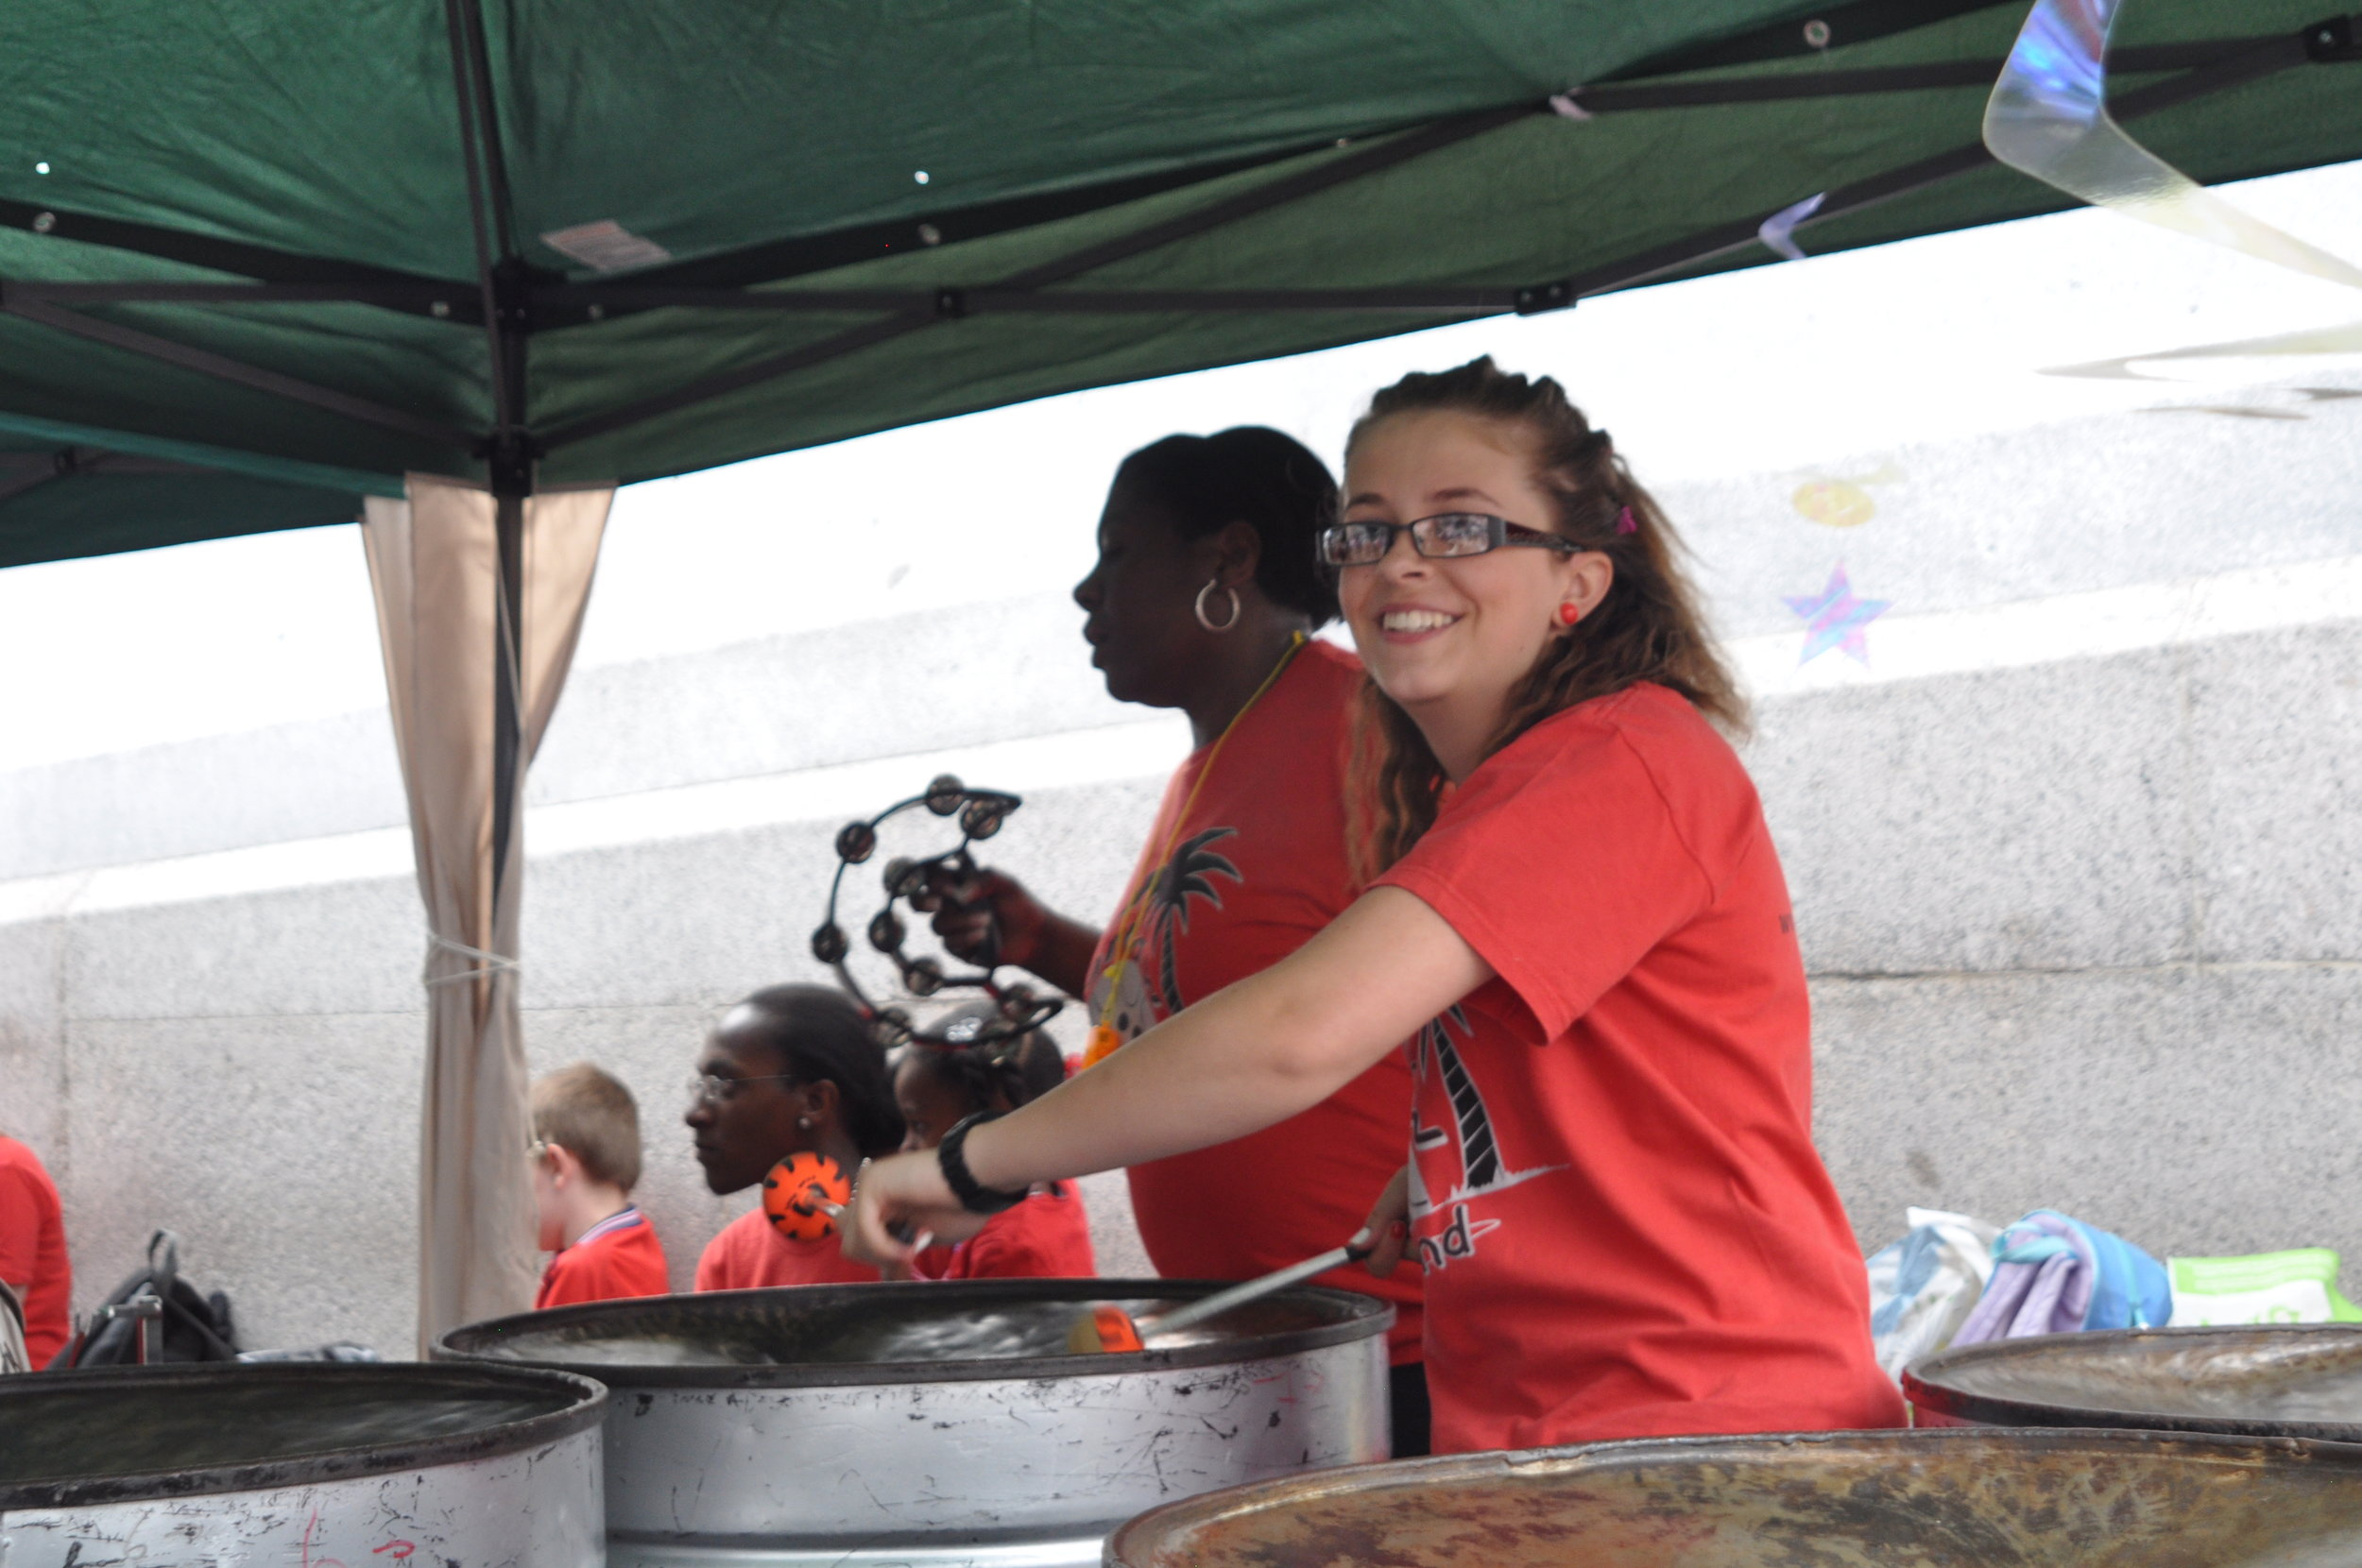 Harlow Steel Orchestra